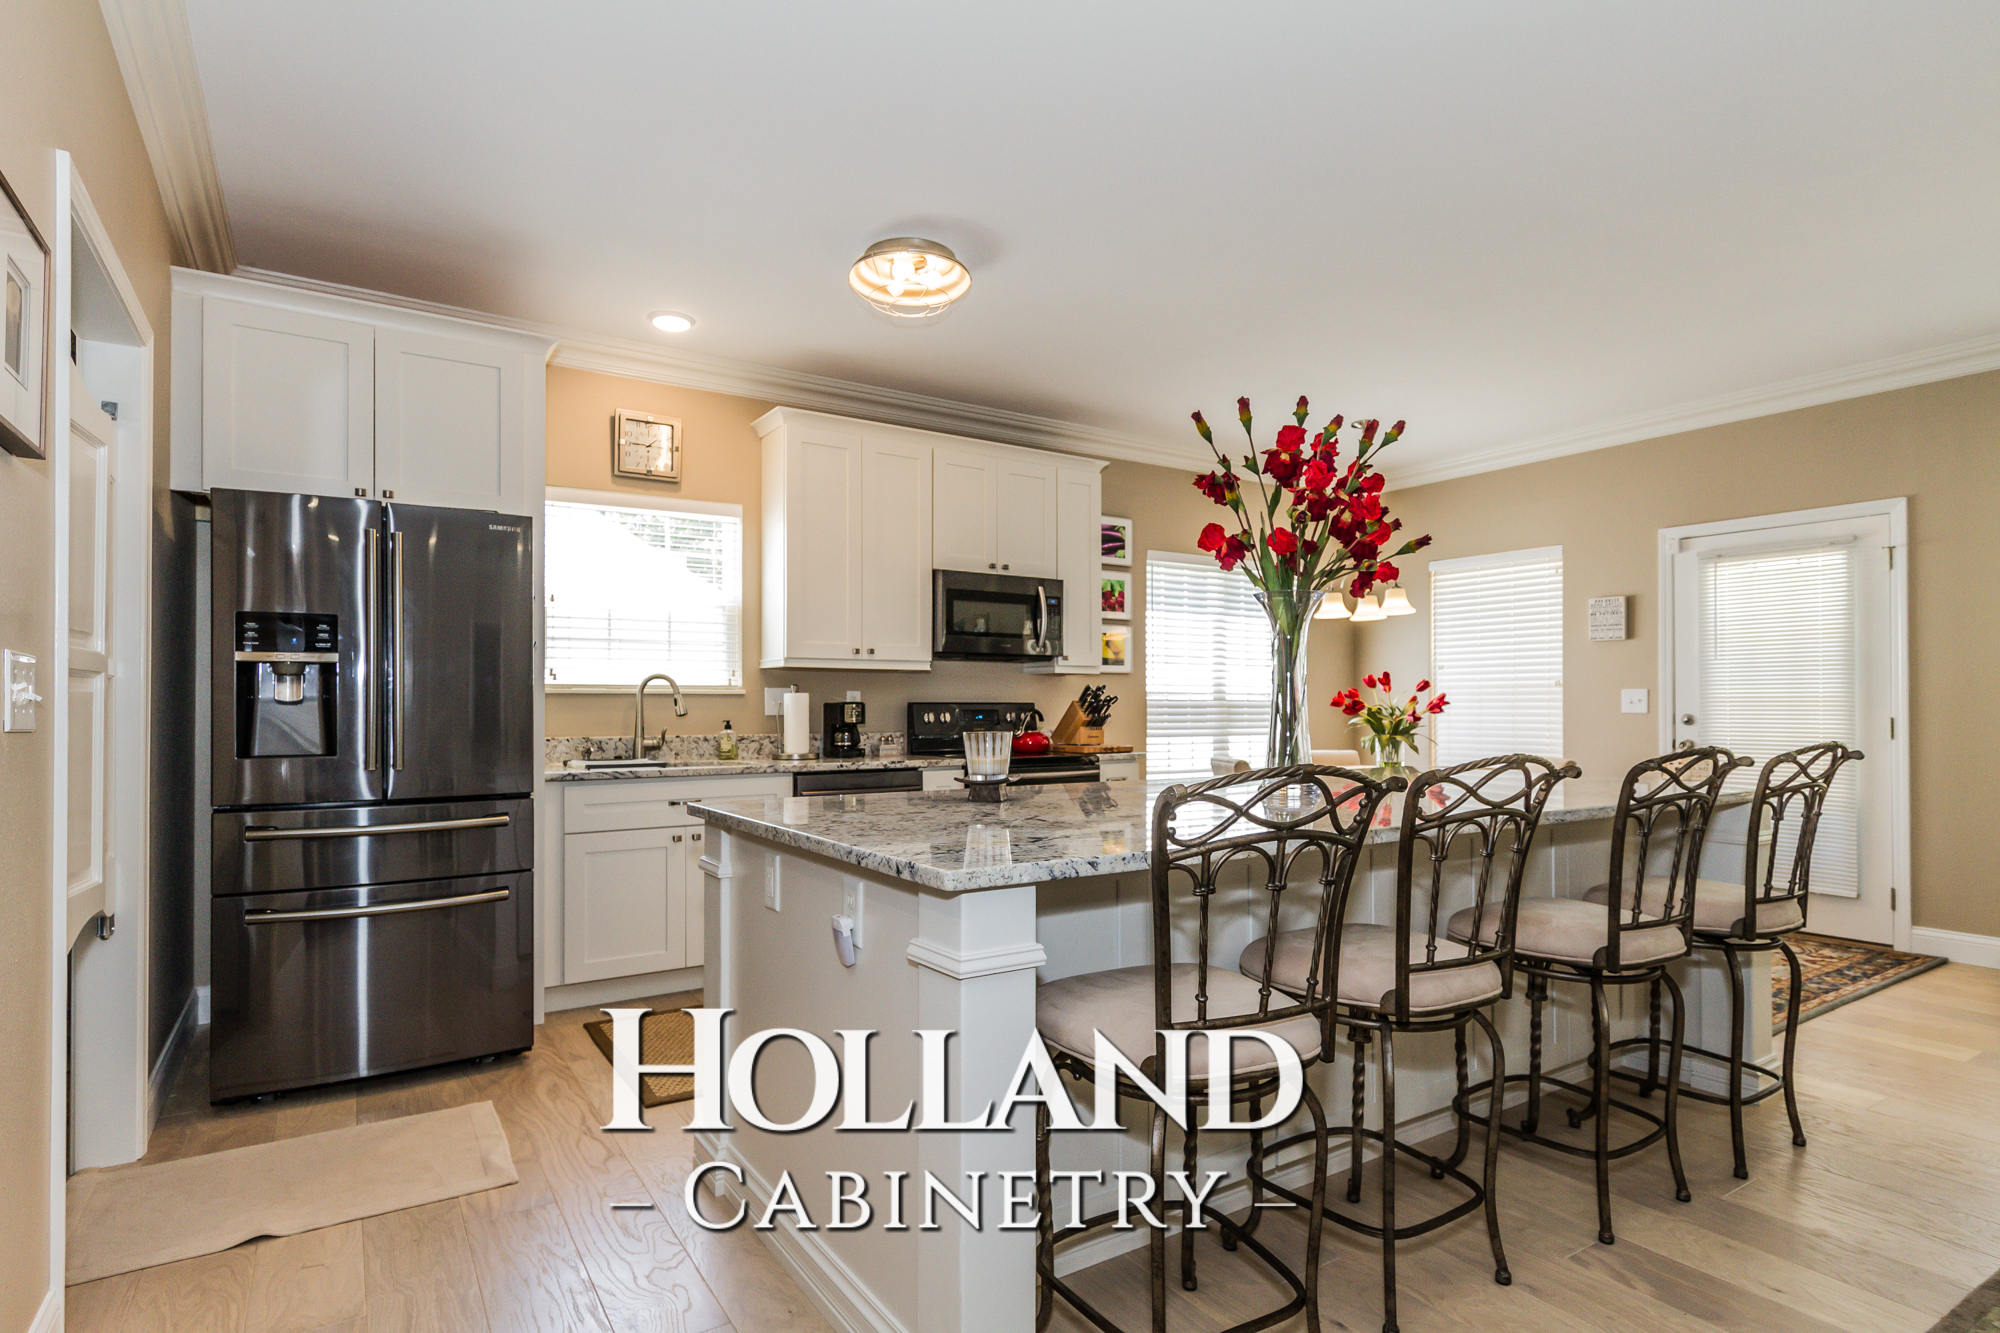 Holland-Cabinetry-Kitchen-Cabinets-6.jpg